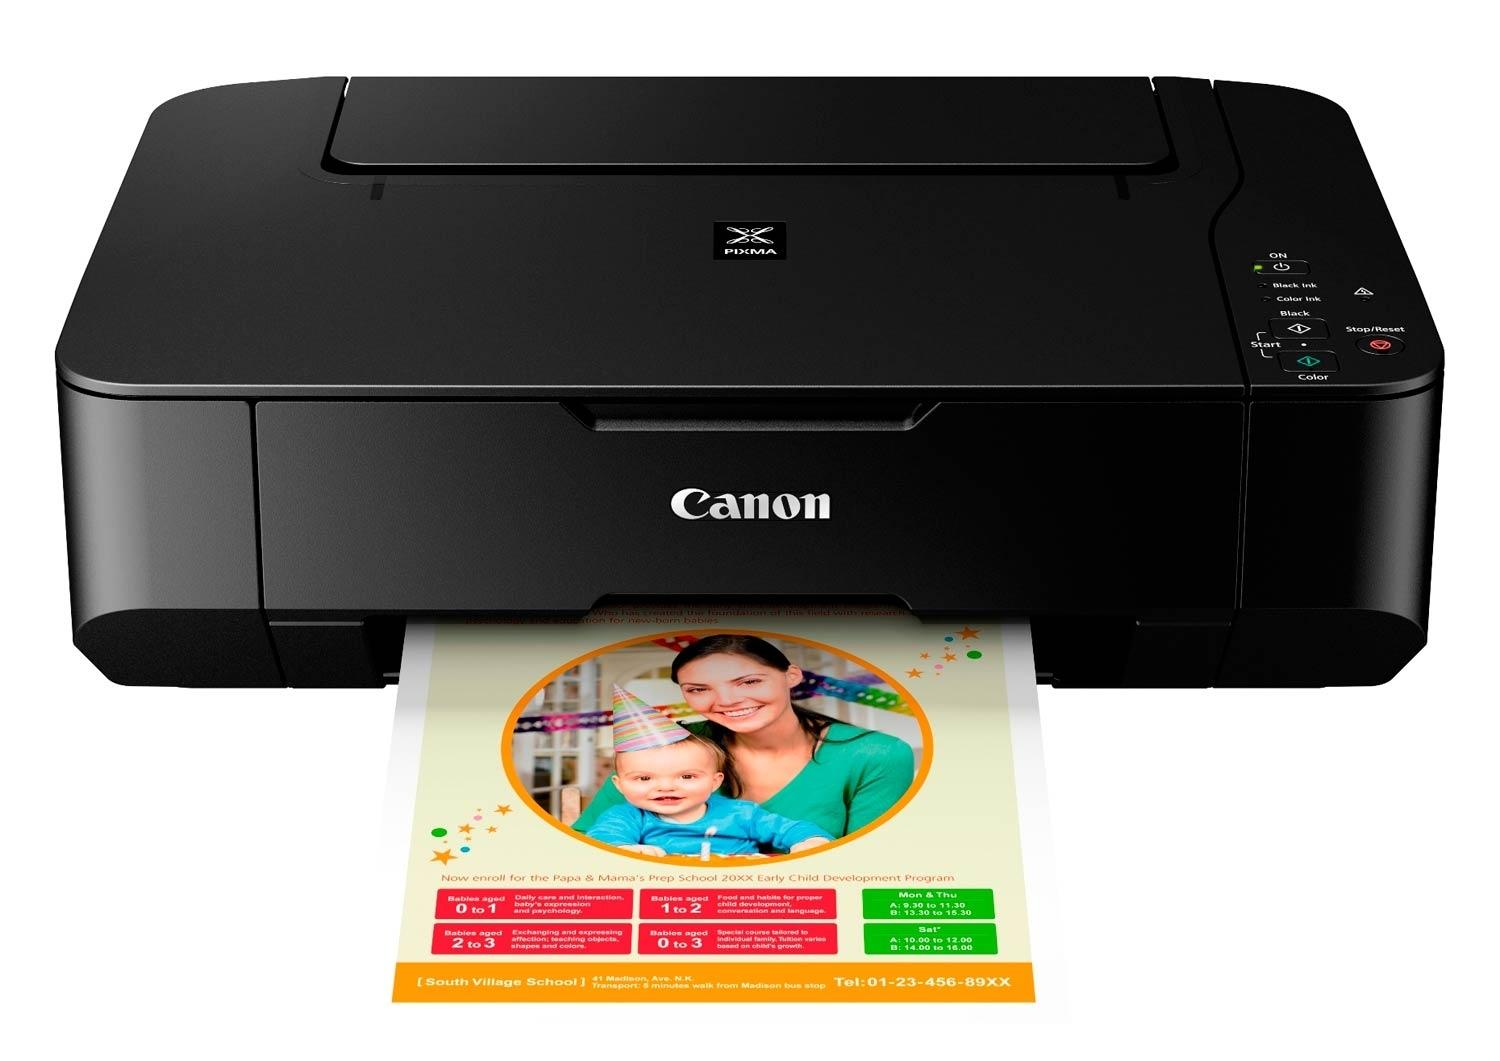 Canon Philippines Multi Function Printers For Sale Prices Mainboard Printer Mg 2570 Pixma Mp237 All In One Inkjet Printerblack